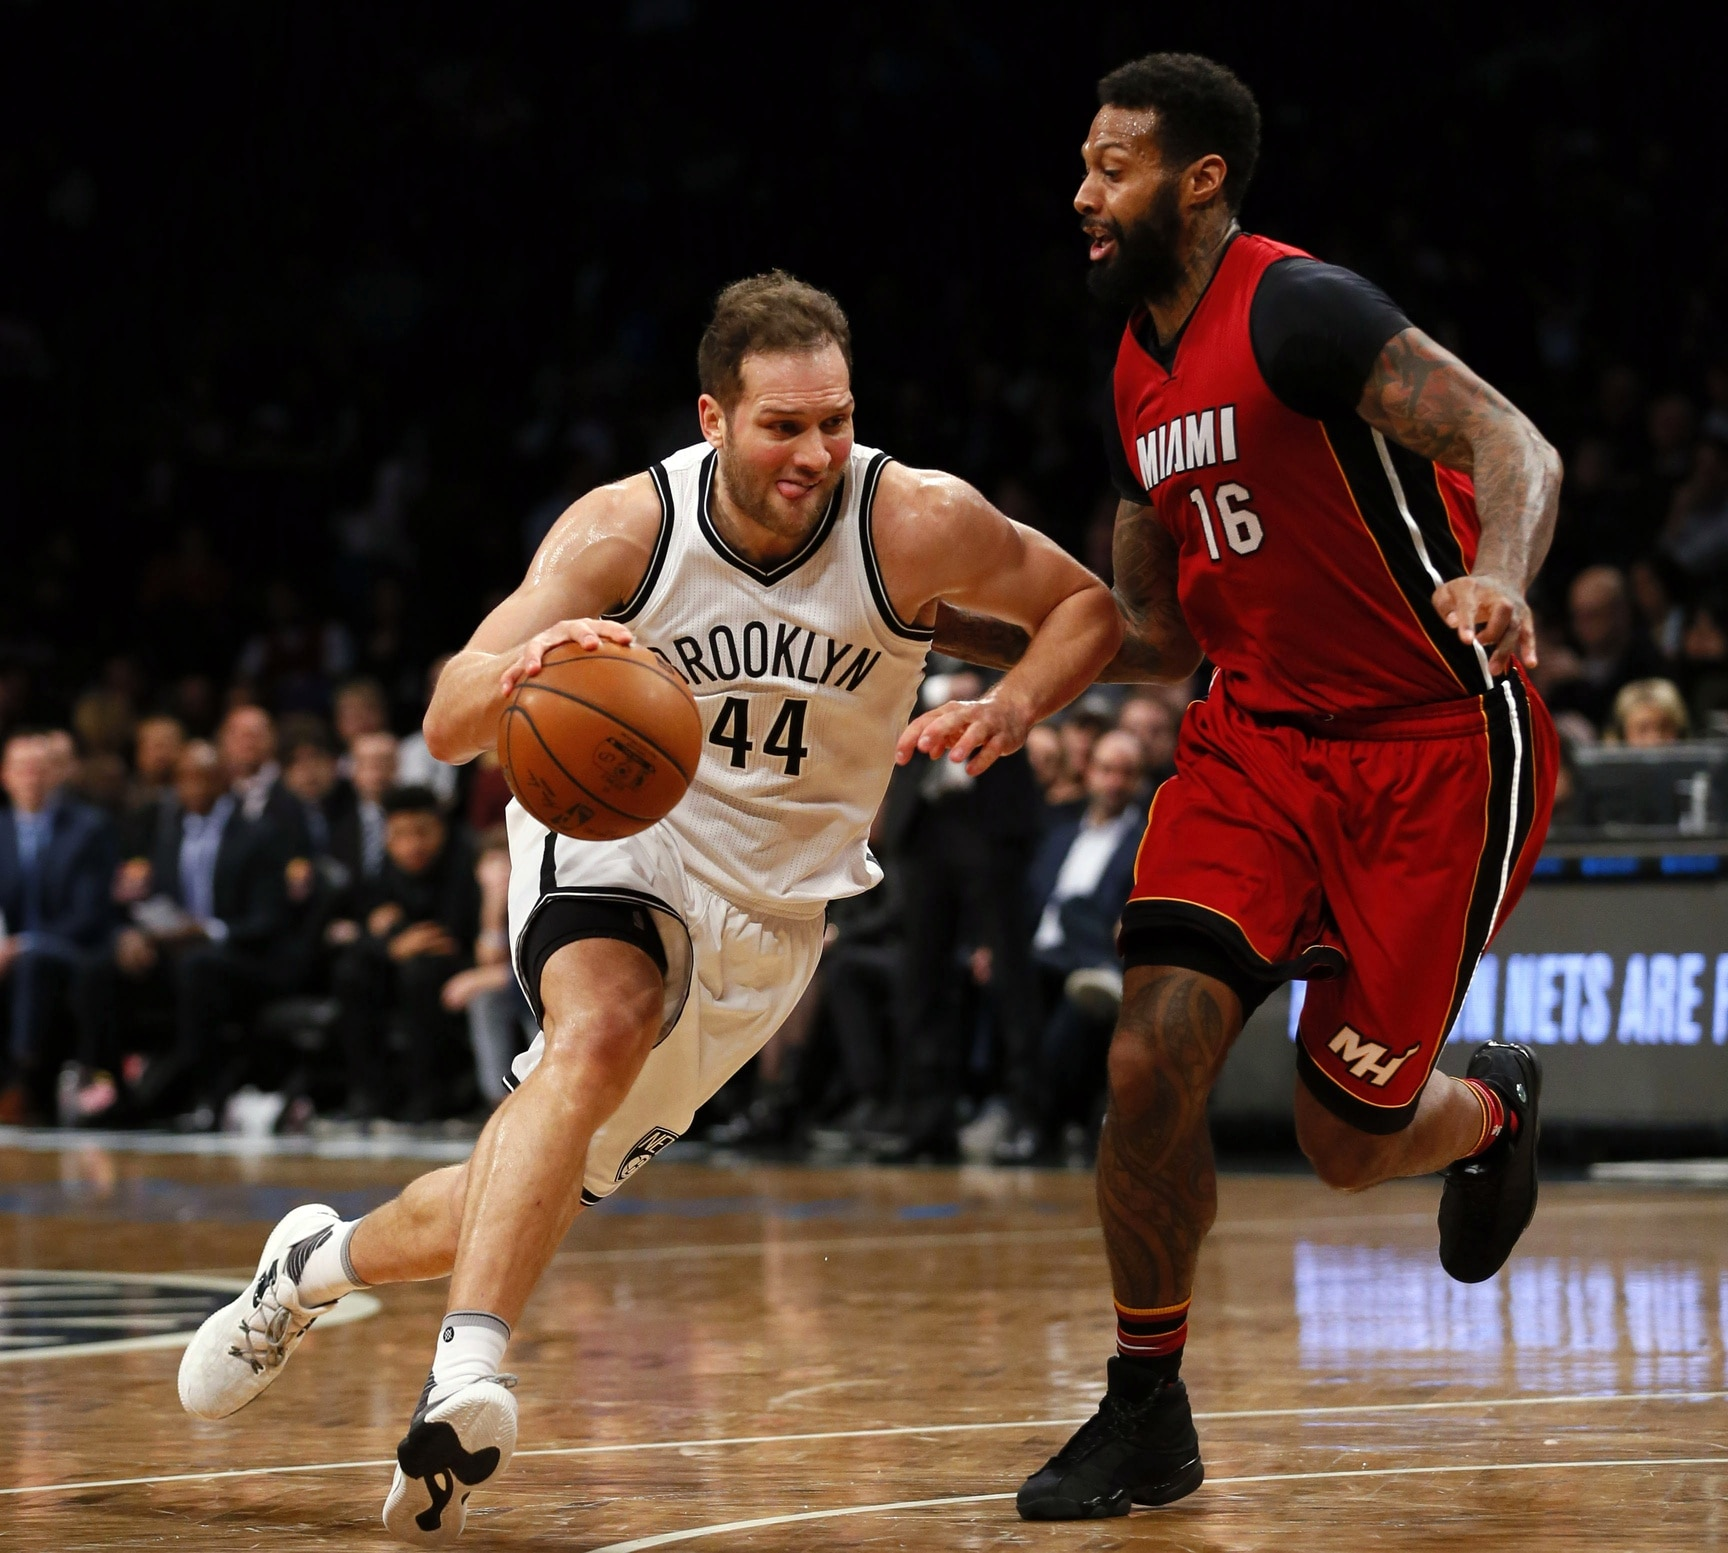 Caption: Jan 25, 2017; Brooklyn, NY, USA; Brooklyn Nets guard Bojan Bogdanovic (44) drives to the basket against Miami Heat forward James Johnson (16) during second half at Barclays Center. The Miami Heat defeated the Brooklyn Nets 109-106. Mandatory Credit: Noah K. Murray-USA TODAY Sports